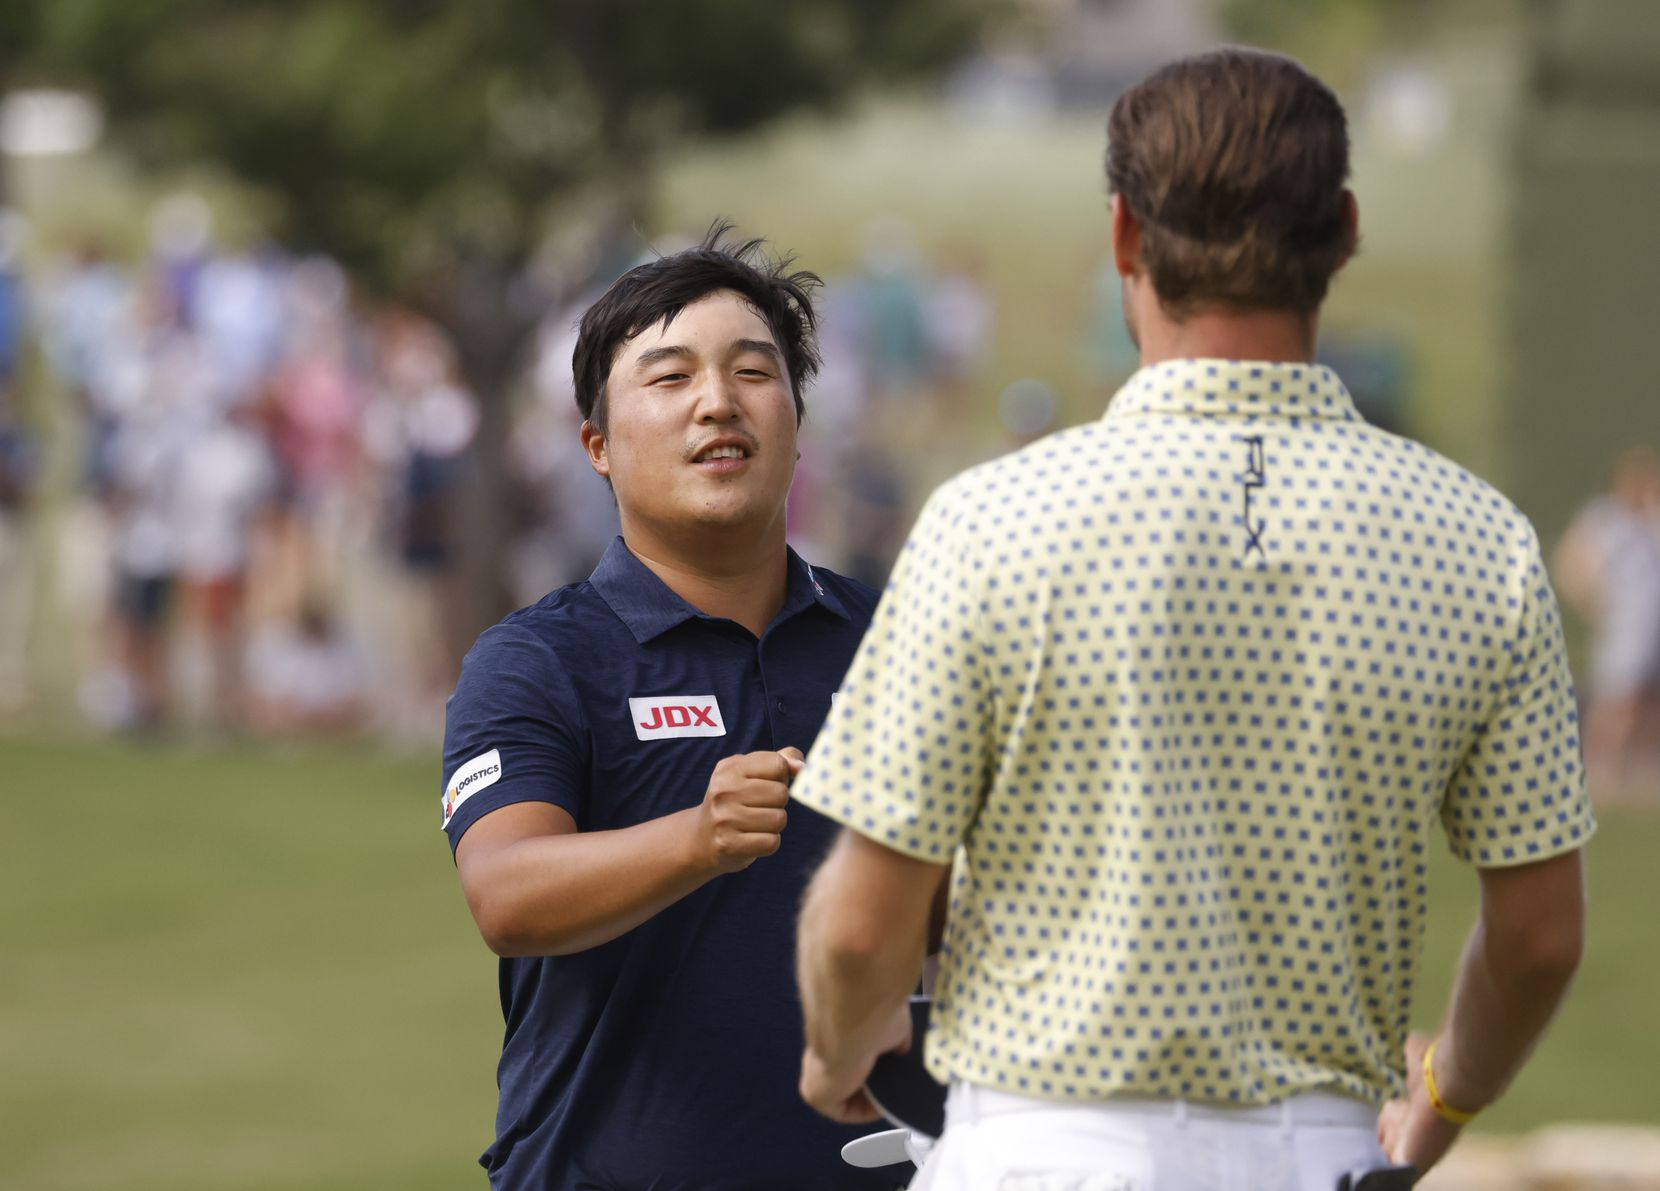 Kyoung-Hoon Lee bumps fists with Doc Redman after finishing on the 18th hole during round 3 of the AT&T Byron Nelson  at TPC Craig Ranch on Saturday, May 15, 2021 in McKinney, Texas. (Vernon Bryant/The Dallas Morning News)